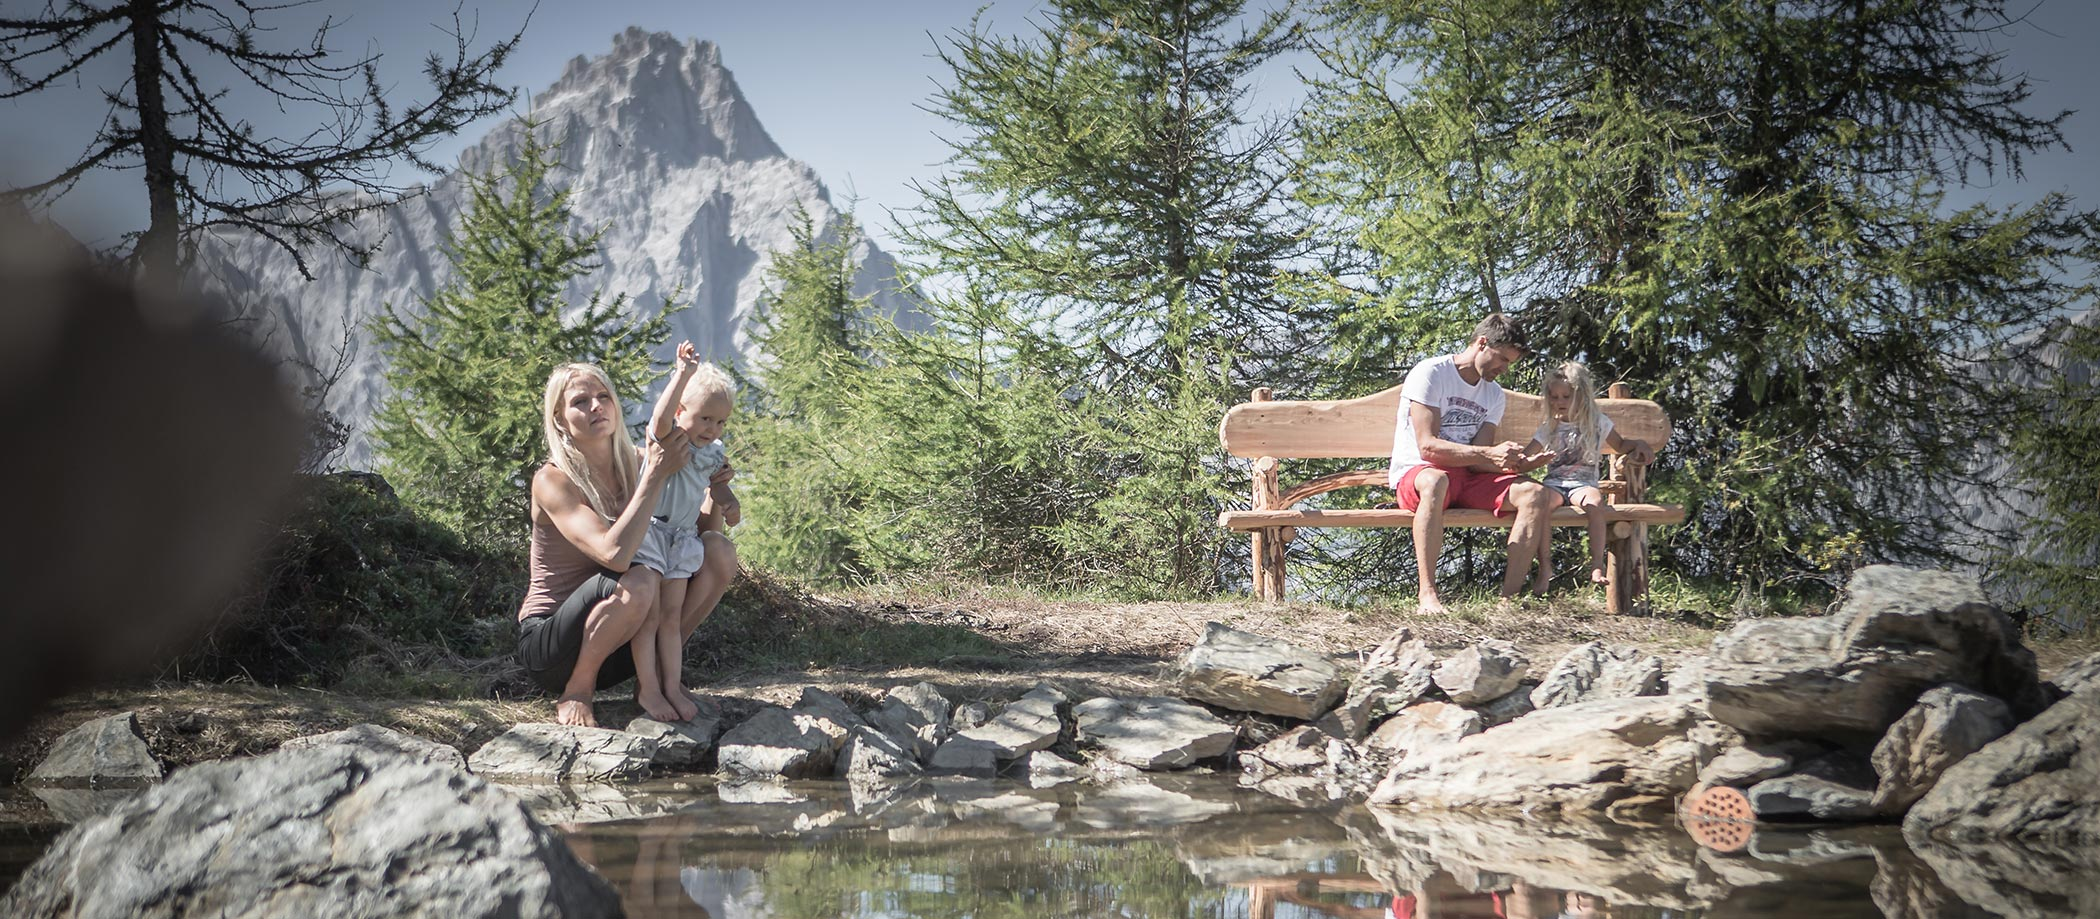 Your family vacation in the Dolomites